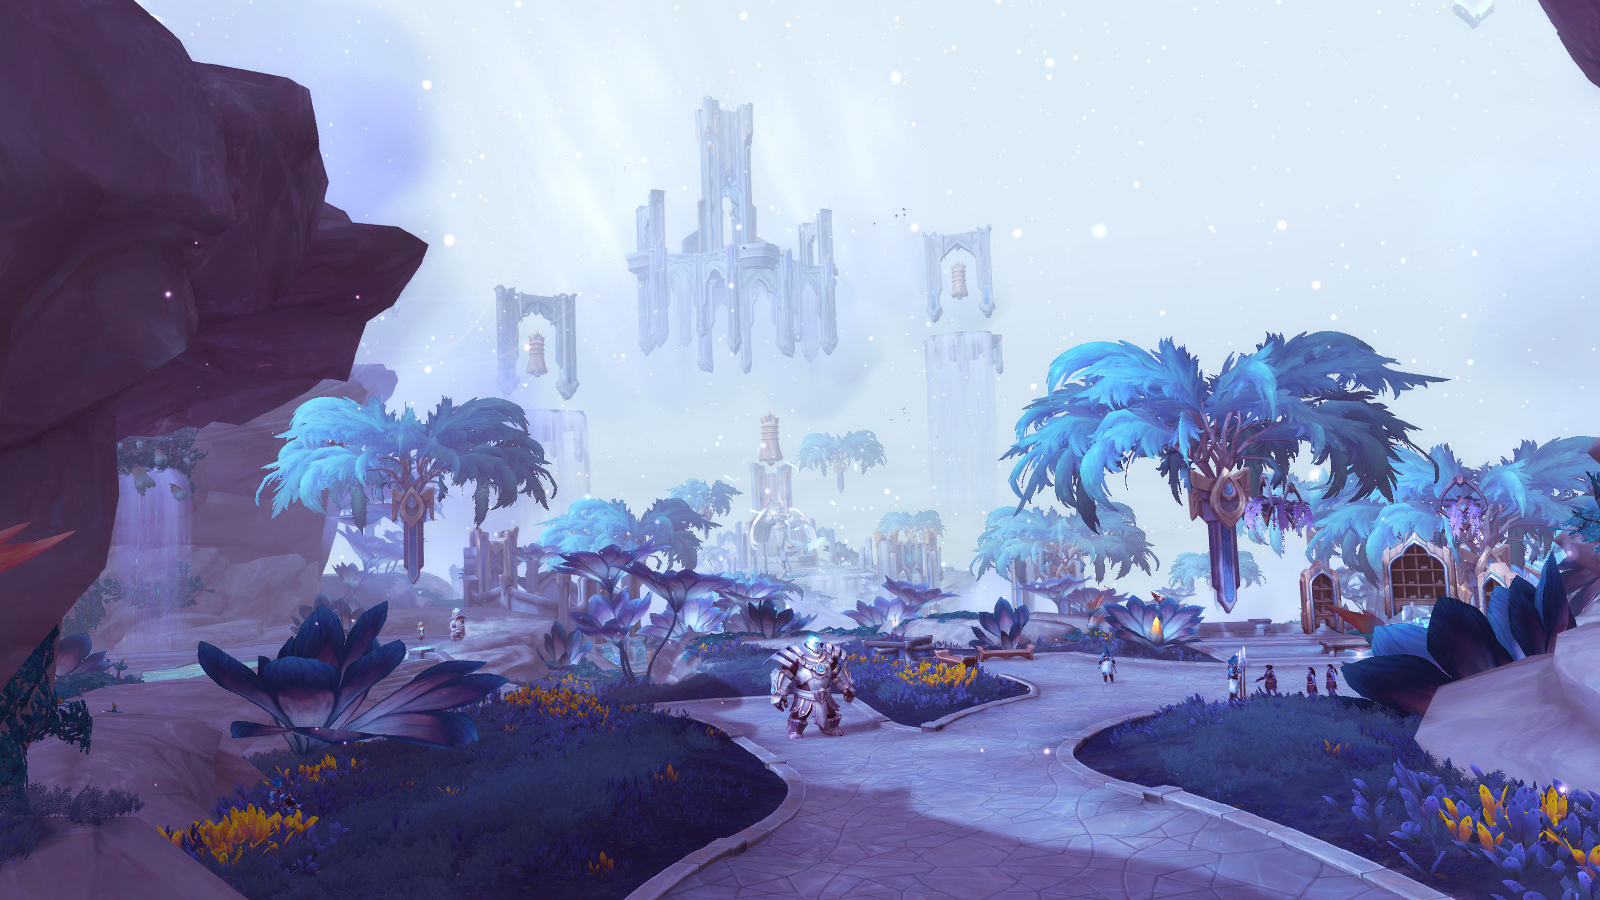 Bastion's zone in WoW, showcasing beautiful celestial buildings